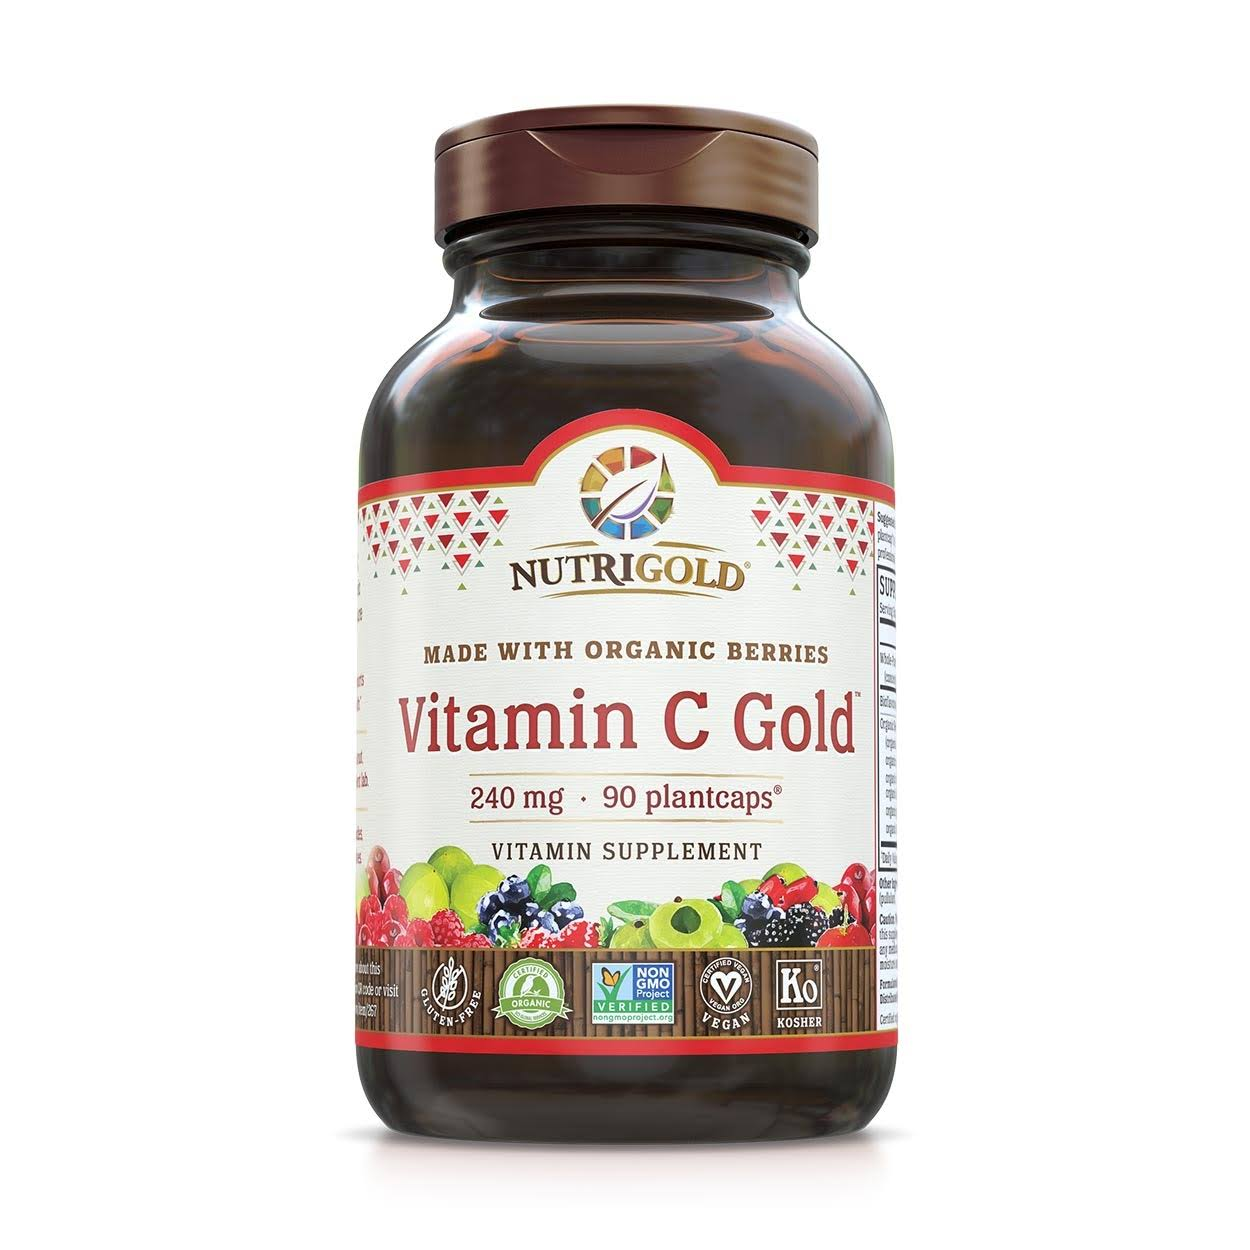 NutriGold Vitamin C Gold - 240mg, 90 Capsules